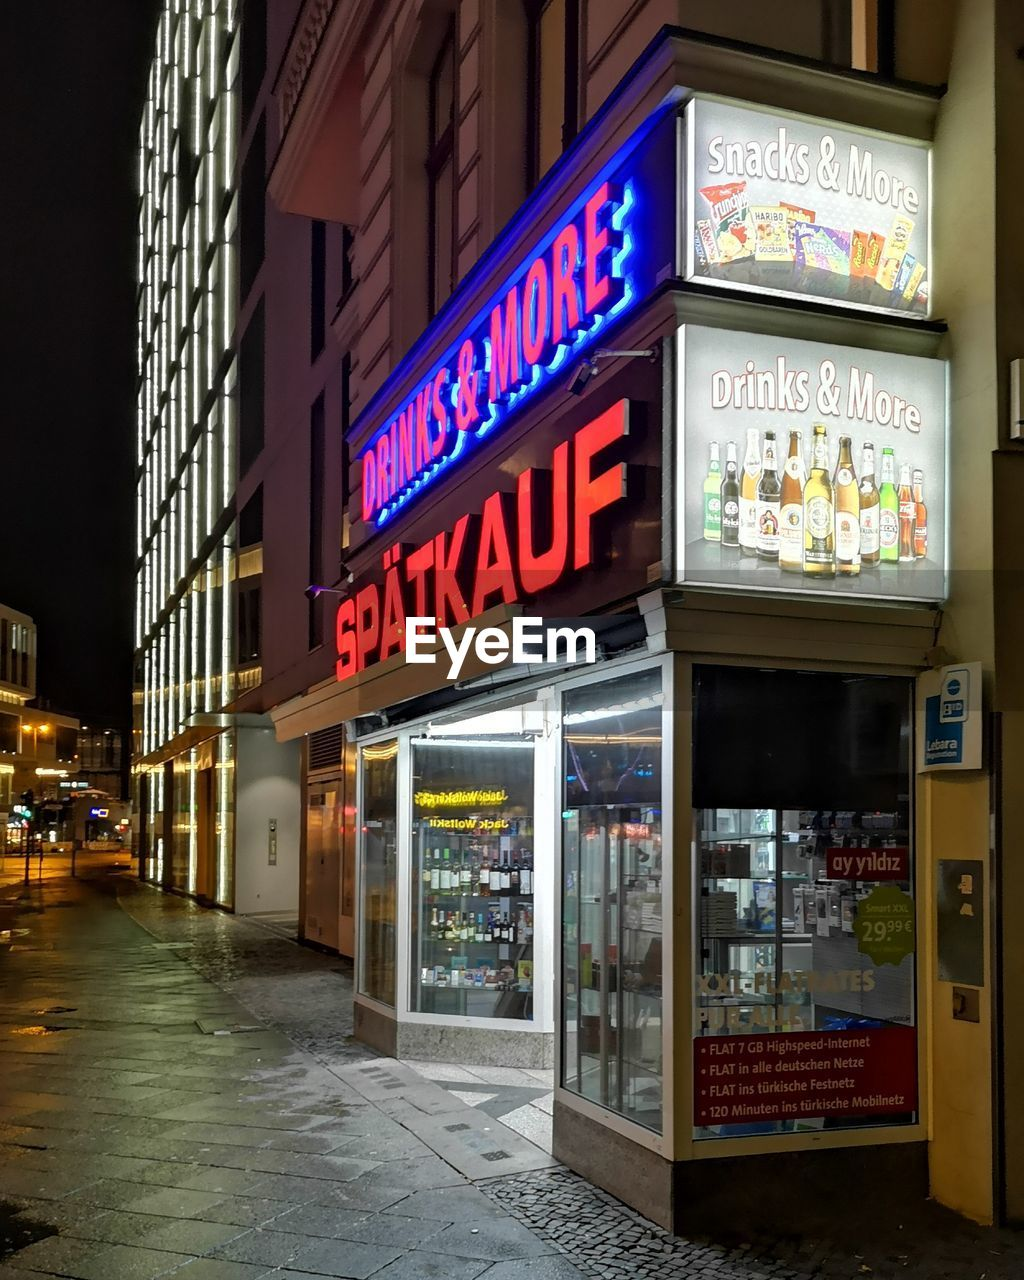 illuminated, communication, text, city, night, architecture, building exterior, built structure, western script, sign, store, no people, neon, retail, commercial sign, business, street, food and drink, outdoors, building, store sign, nightlife